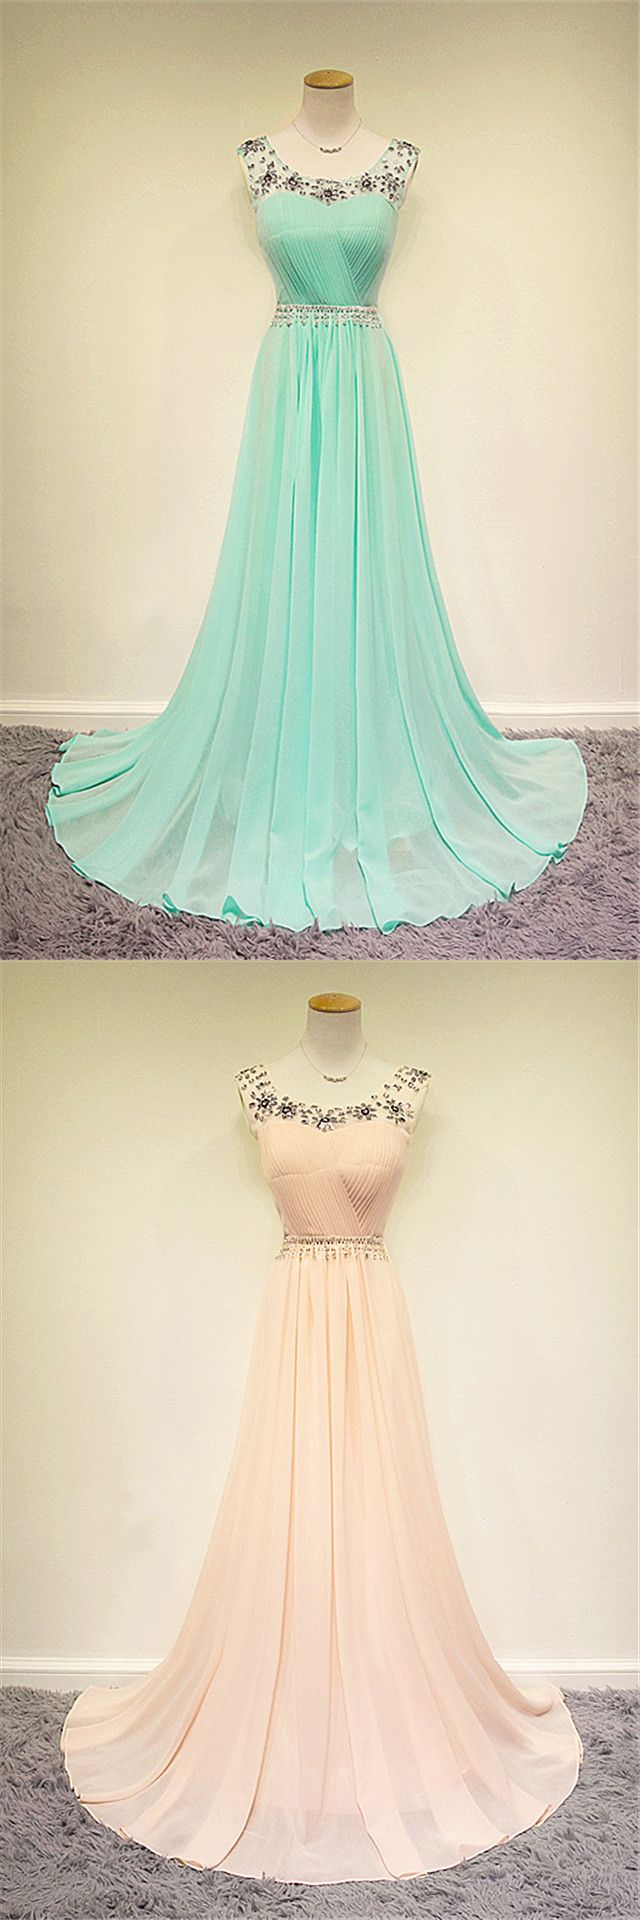 Found it, the dresses for the maid of honor/bridesmaids!!!!!!